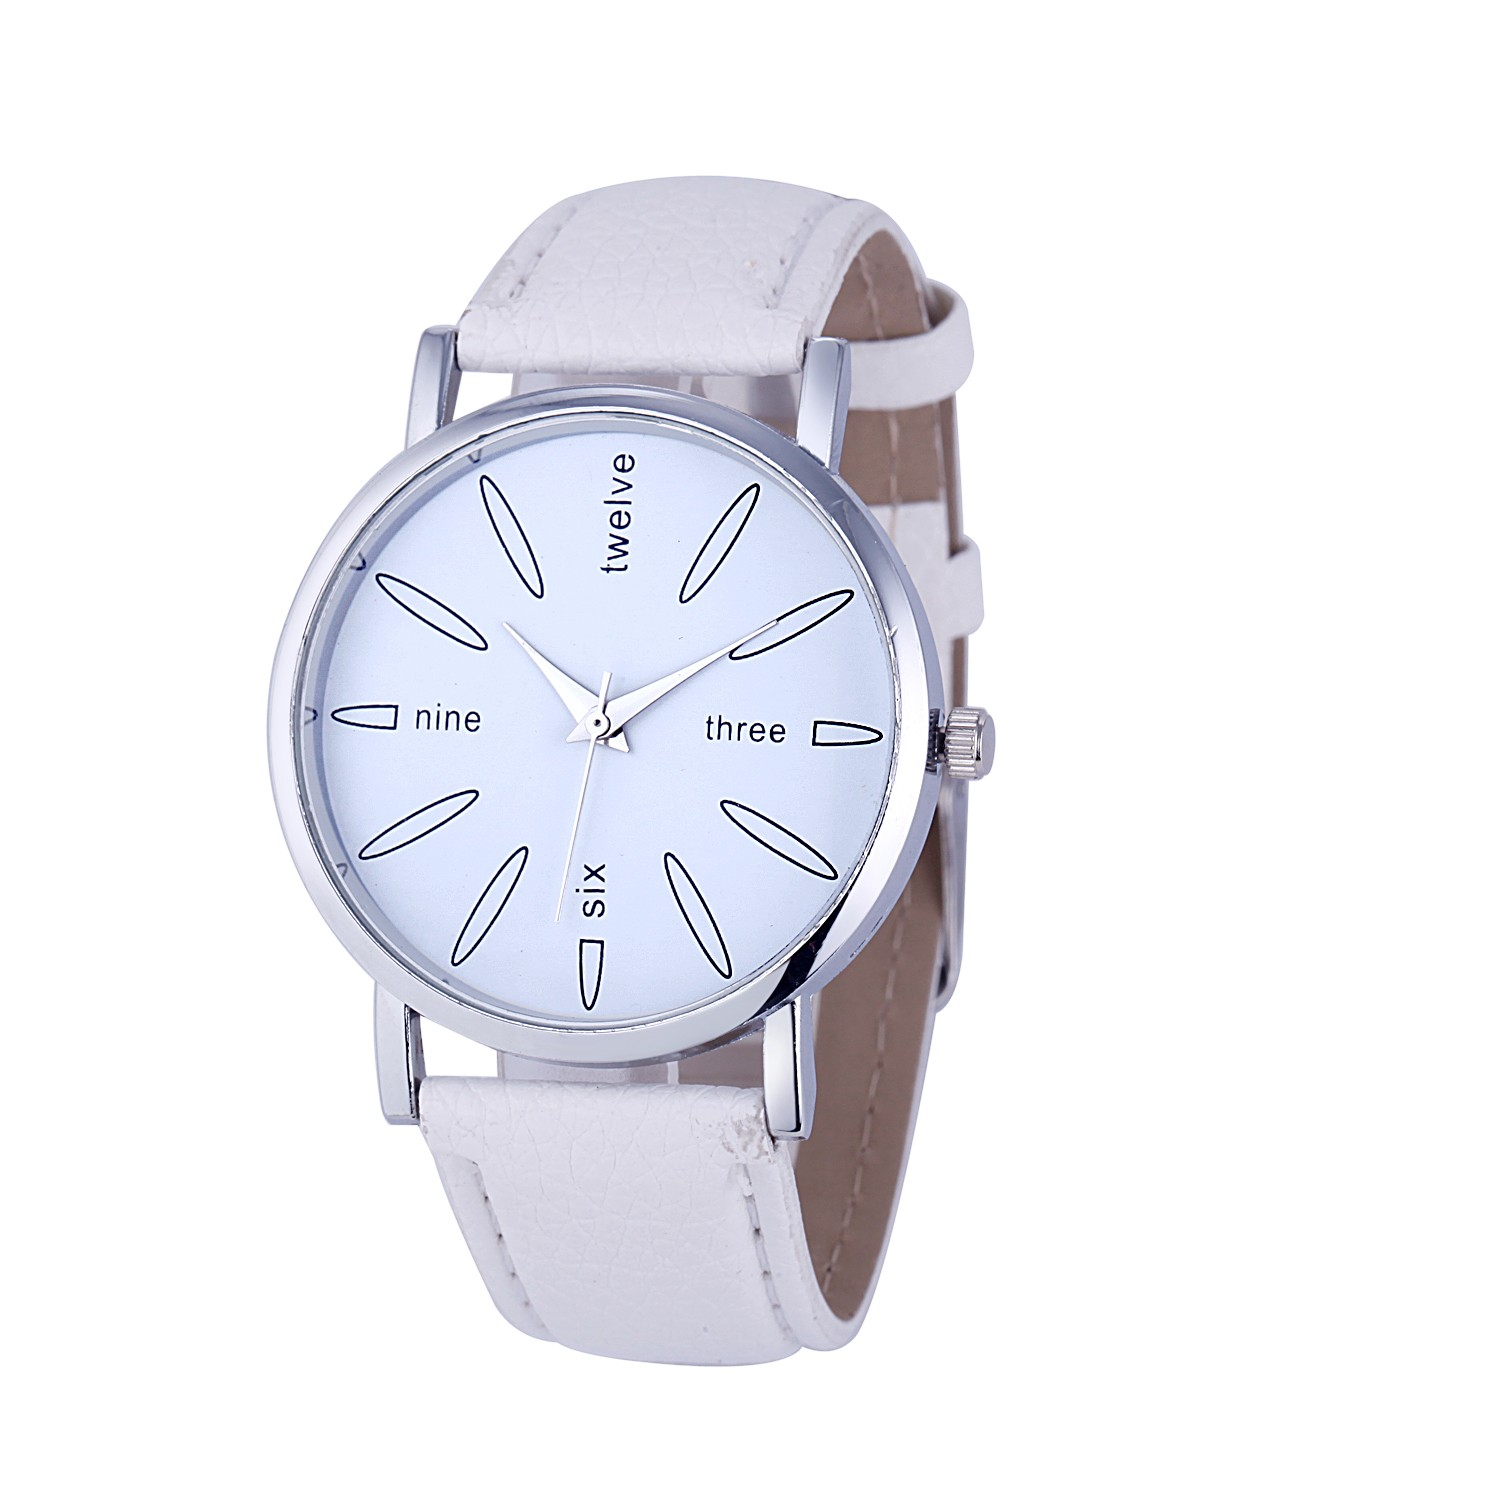 Watch Women Watches Fashion Casual Stainless Steel Leather Band relogio feminino Quartz Analog Clock WristWatches Dropshipping tolasi brand fashion quartz women watch stainless steel clock women s watches casual date relogio feminino female wristwatches